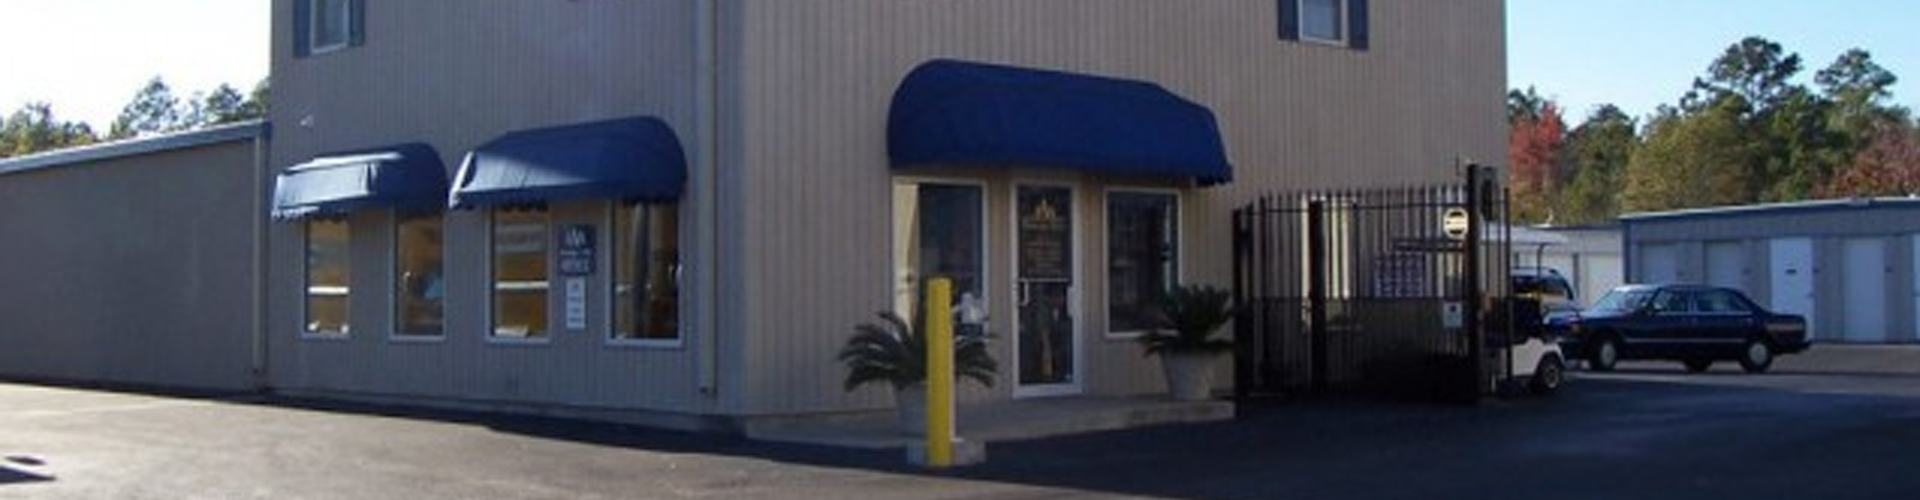 Ridgeland SC Storage location